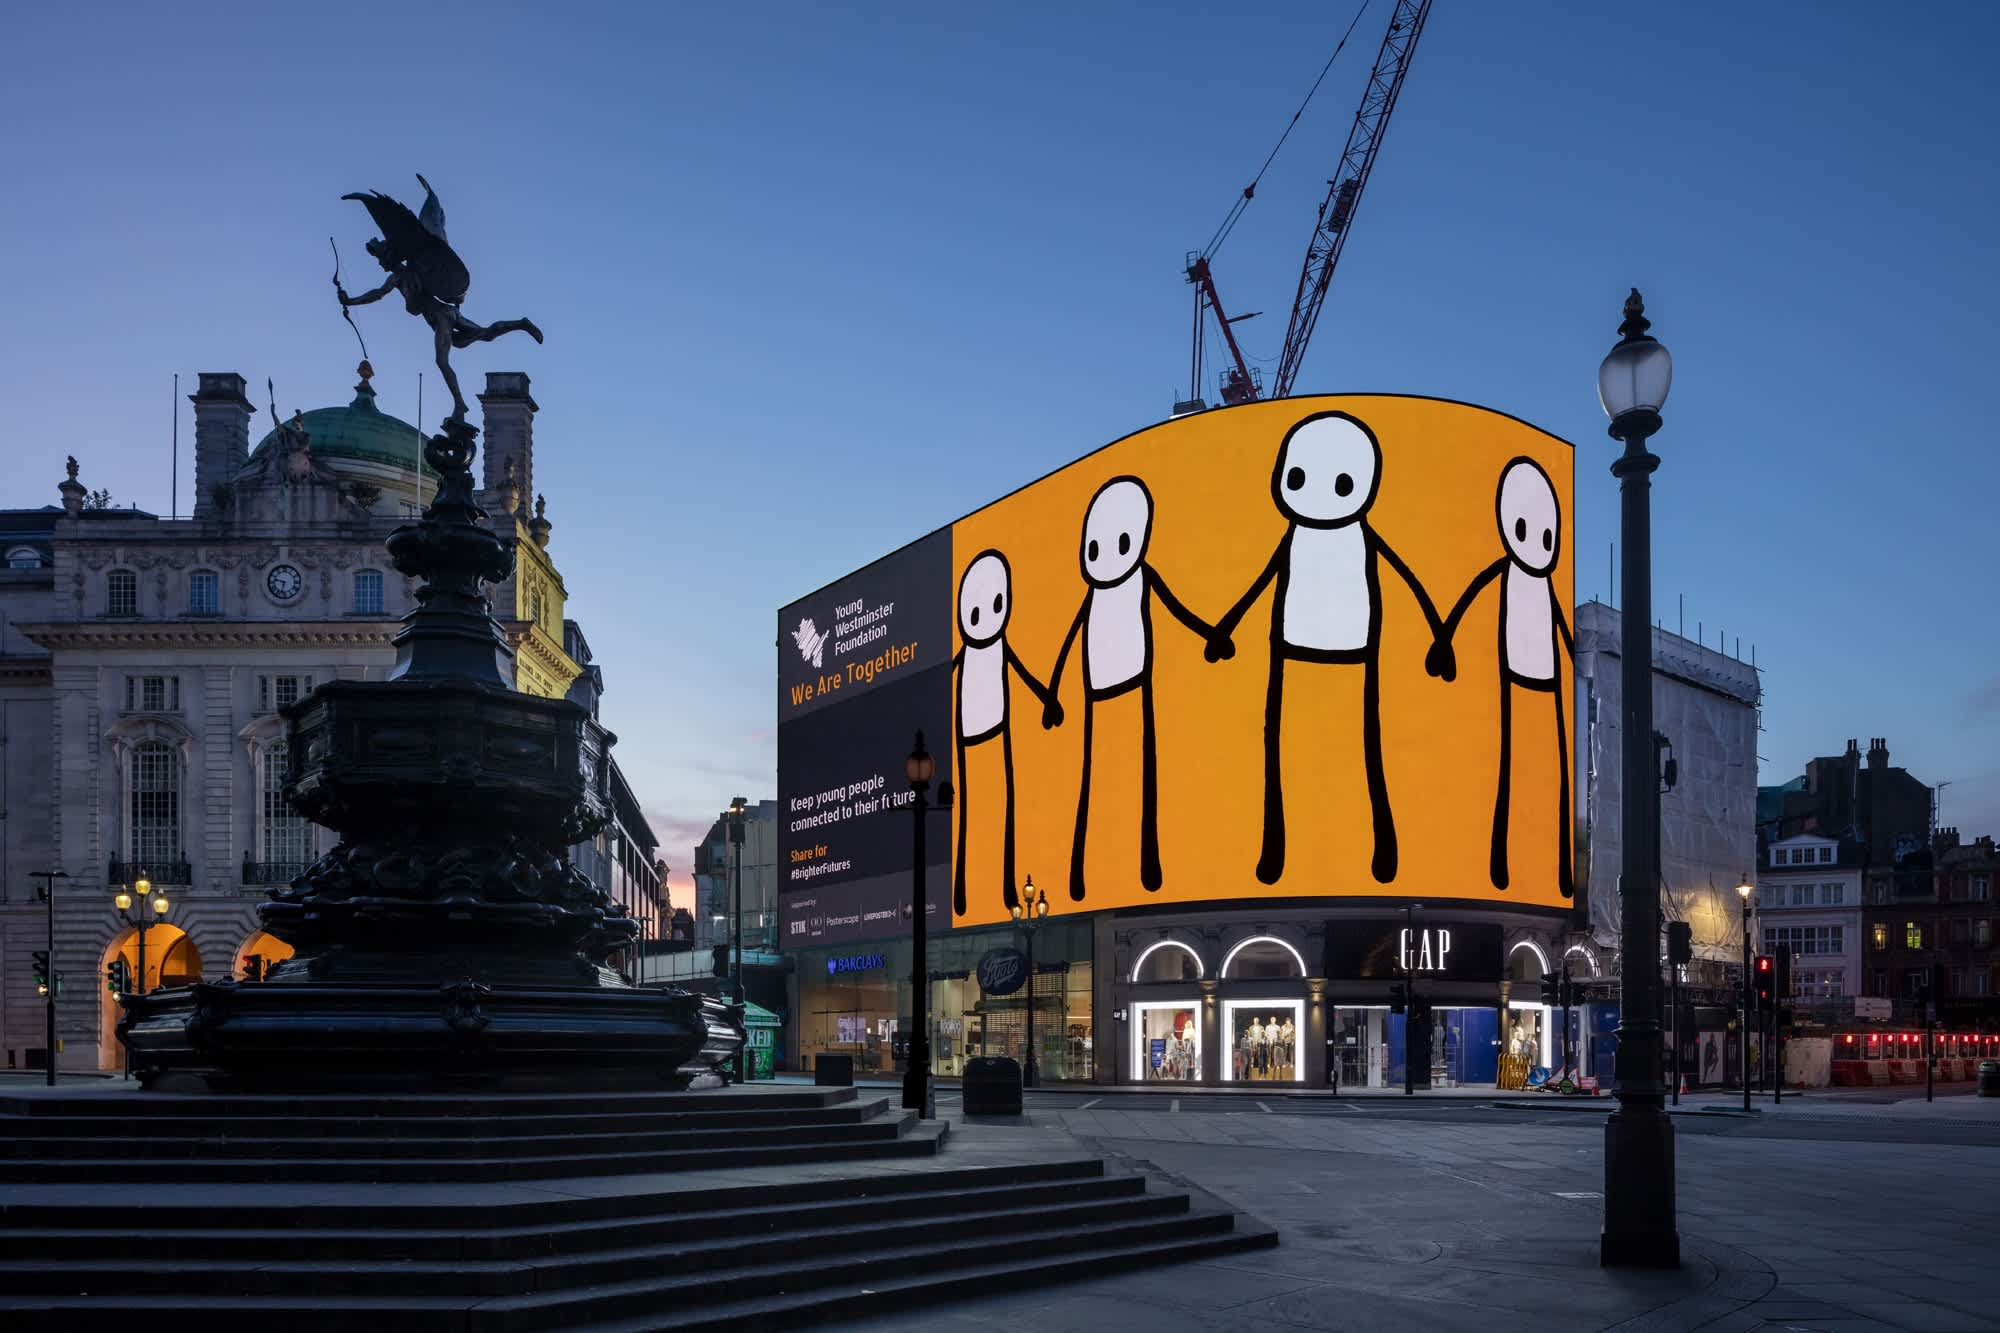 STIK Brightens up Piccadilly Circus To Raise Money For Charity